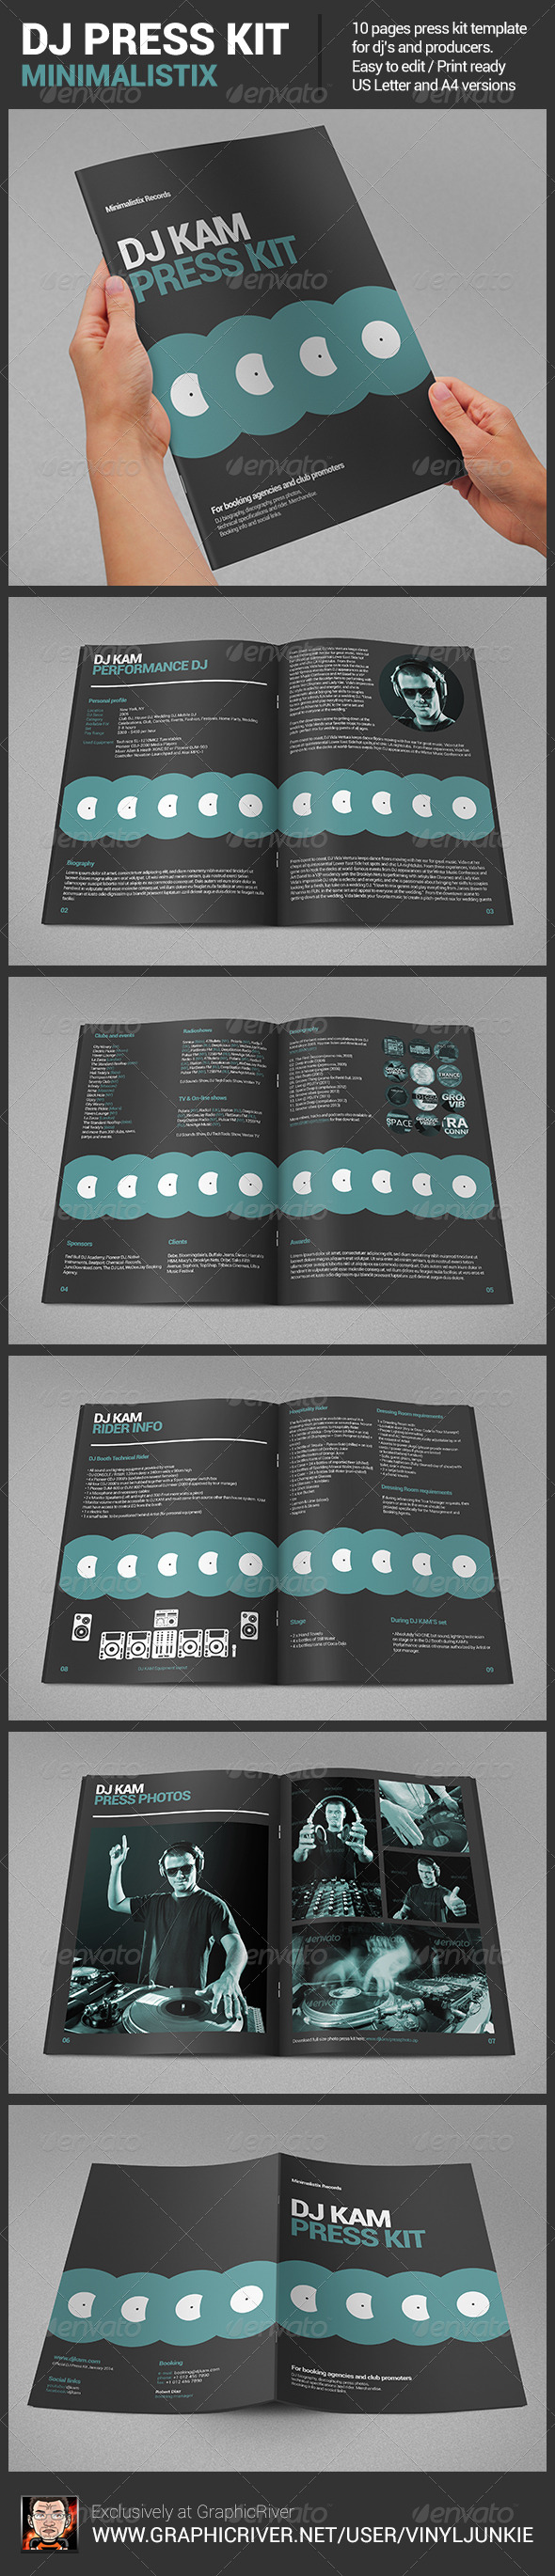 Minimalistix - DJ Press Kit - Portfolio Brochures